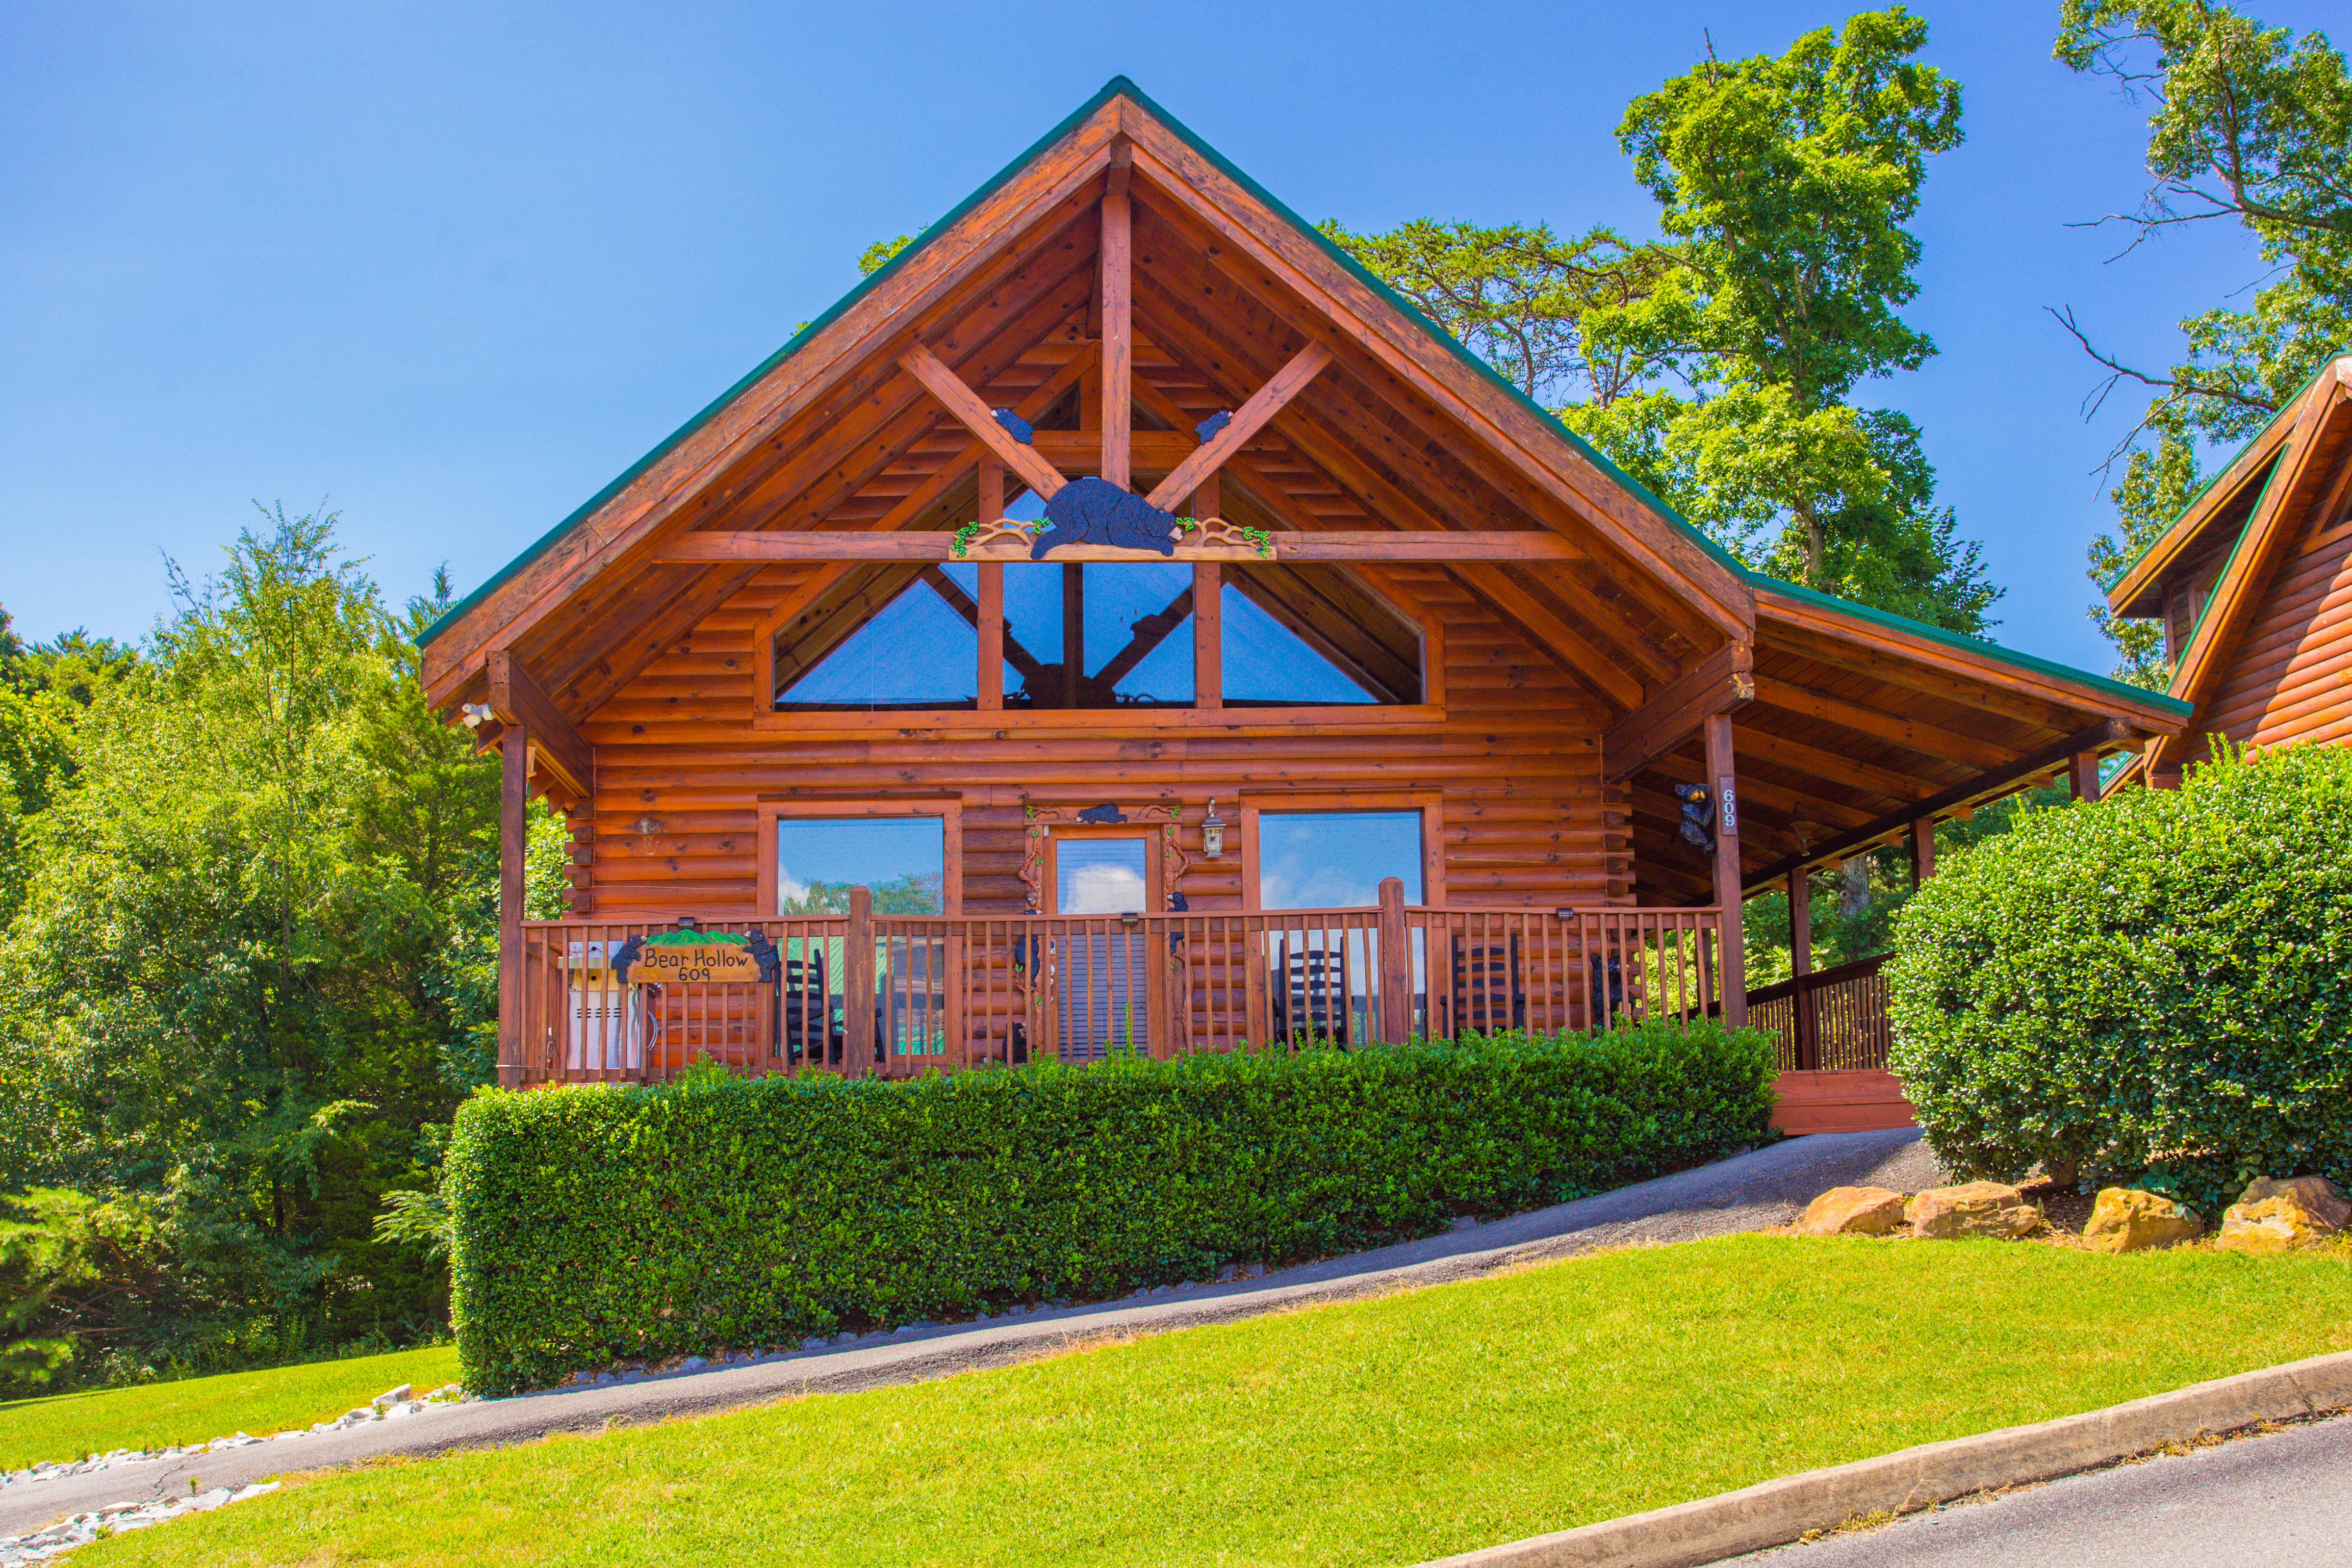 Bear Hollow Pigeon Forge Tn 1 Bedroom Vacation Cabin Rental 133915 Find Rentals